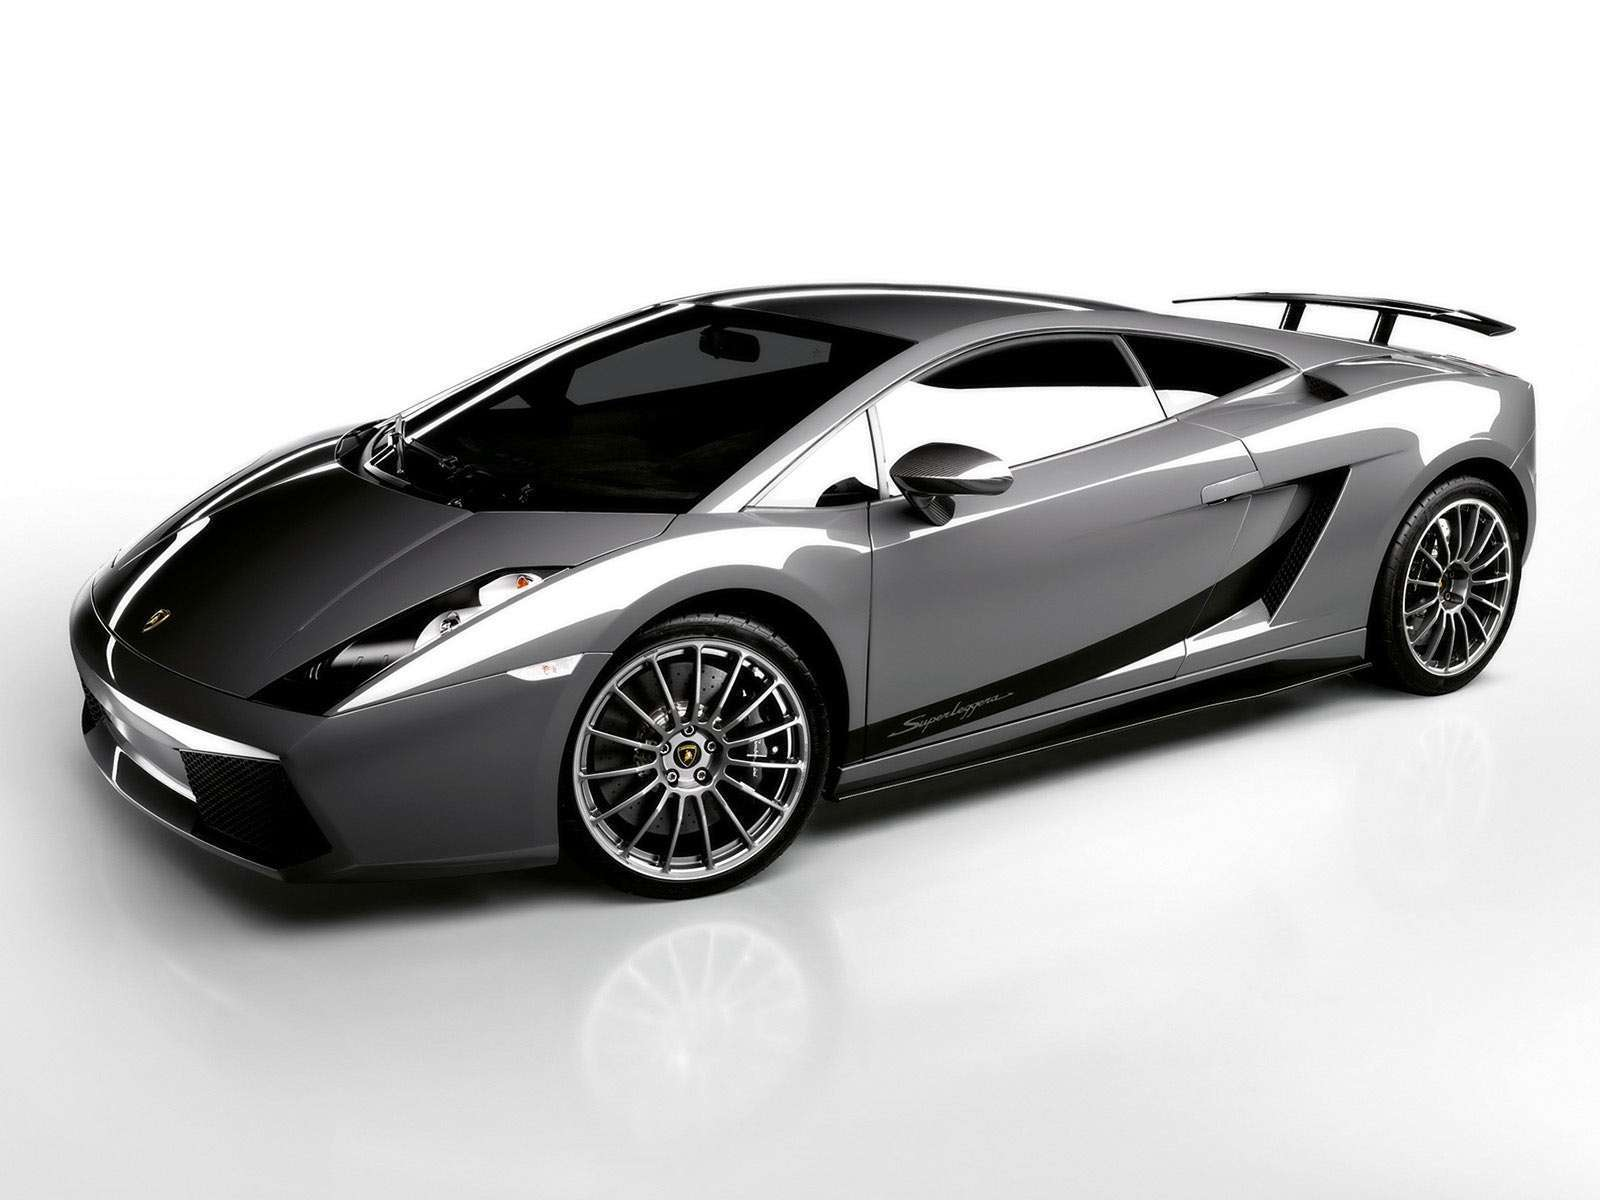 Lamborghini Gallardo Mfs Wallpaper Wallpapers